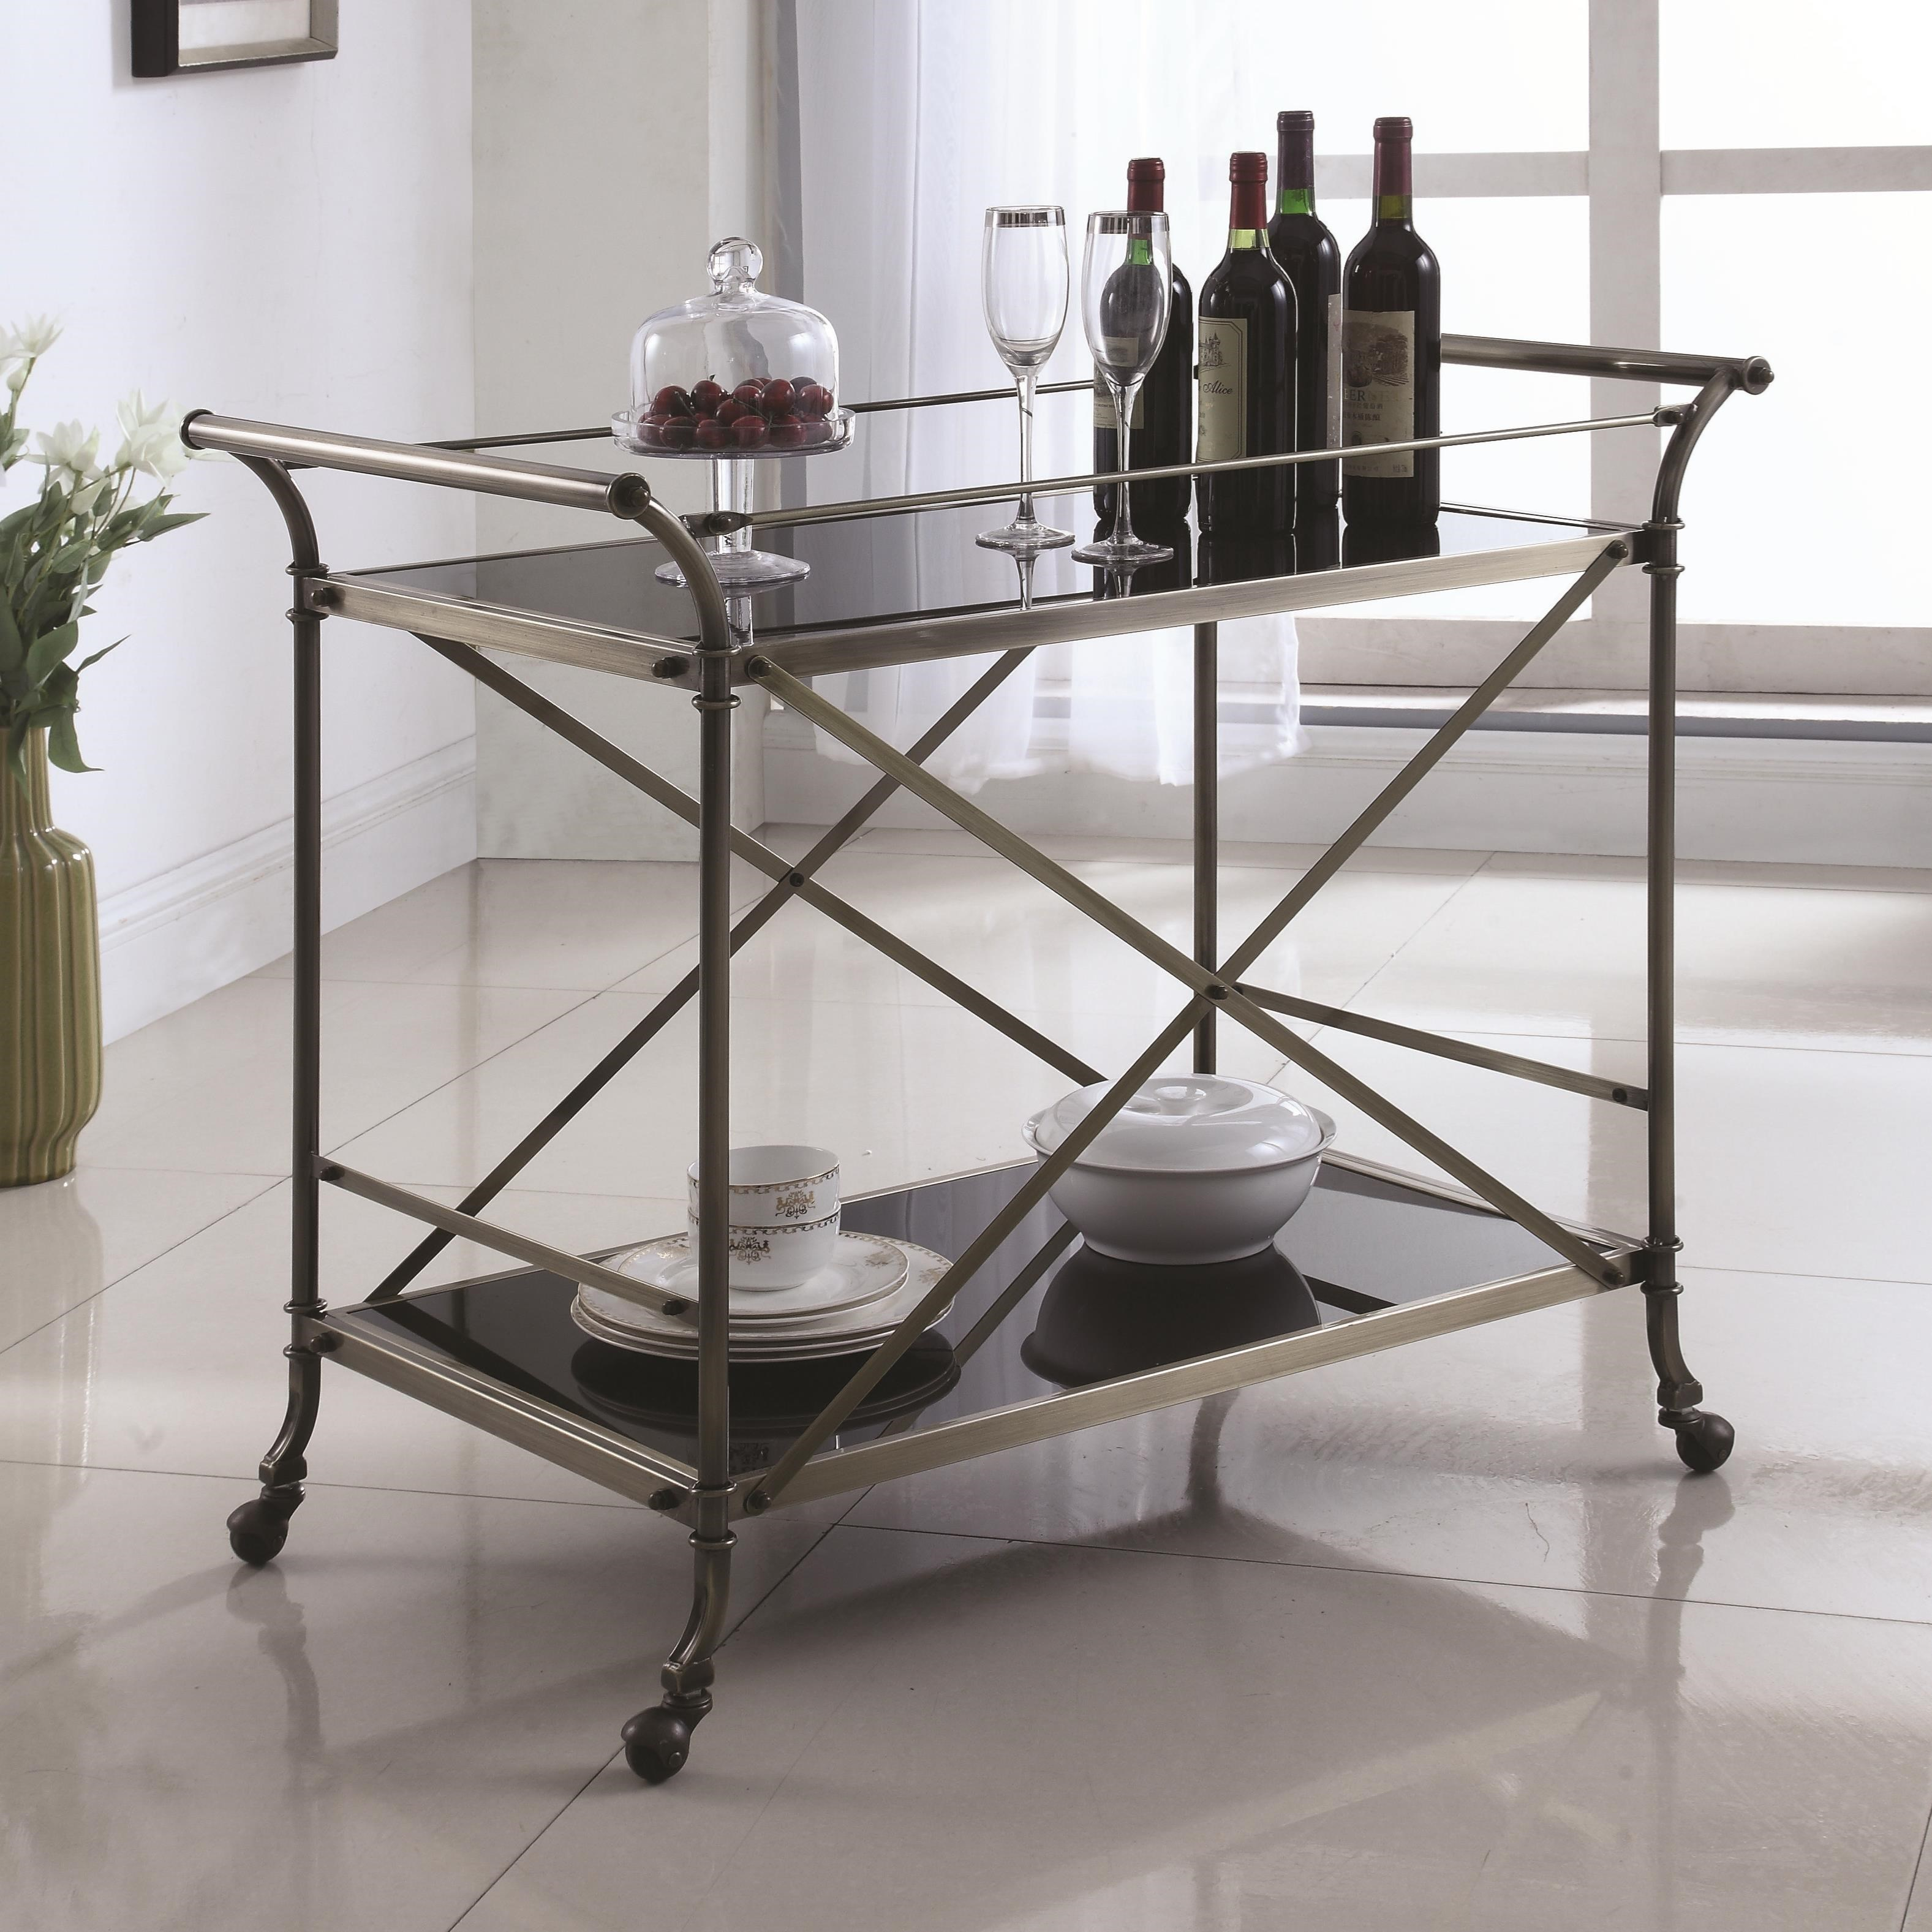 Industrial Kitchen Cart Bar Cart Serving Cart: Coaster Kitchen Carts 910190 Metal Serving Cart With Glass